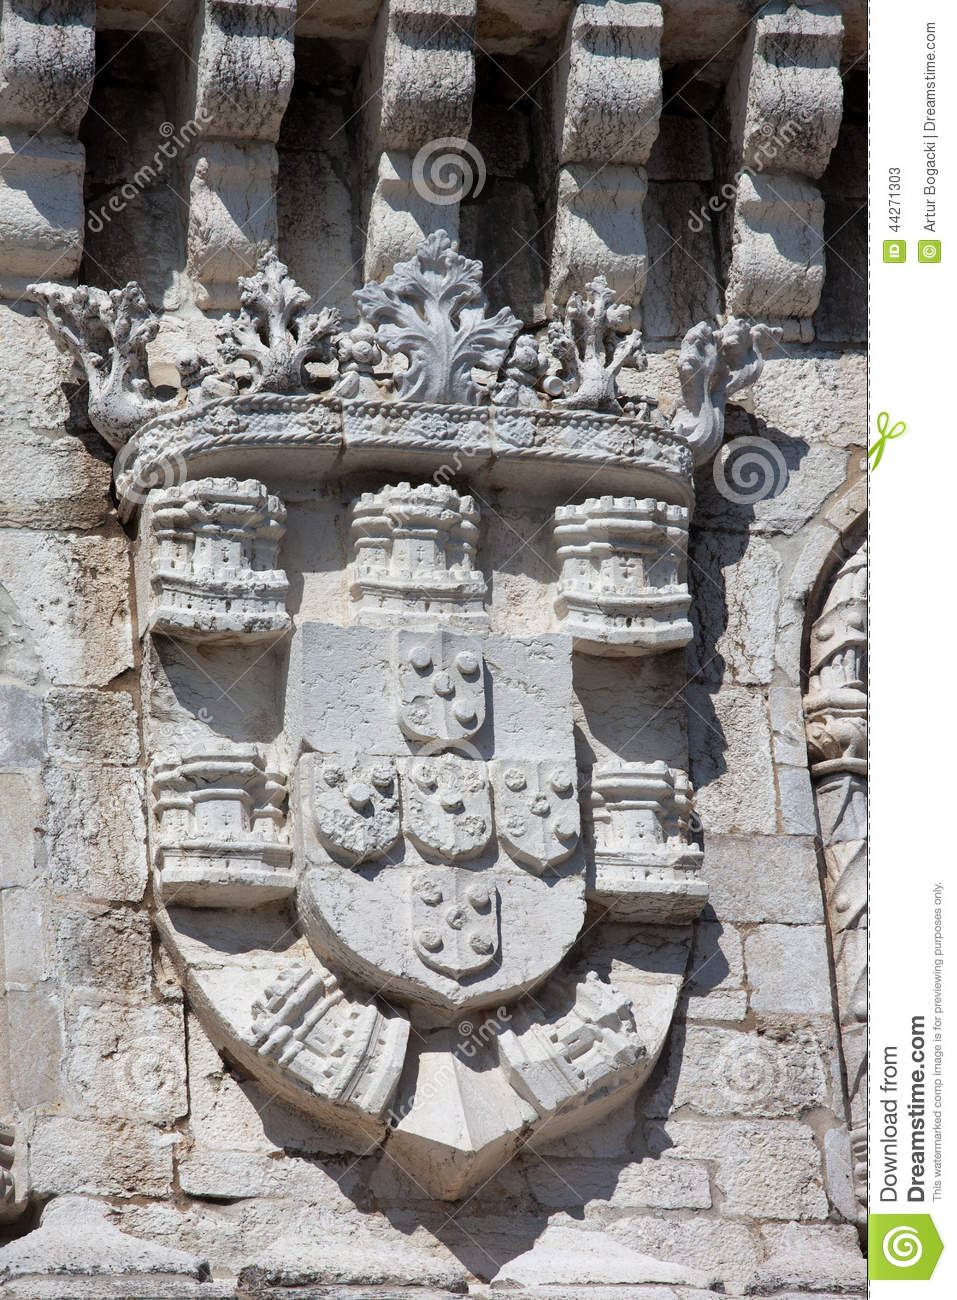 Coat of Arms of King Manuel I at the Belem Tower